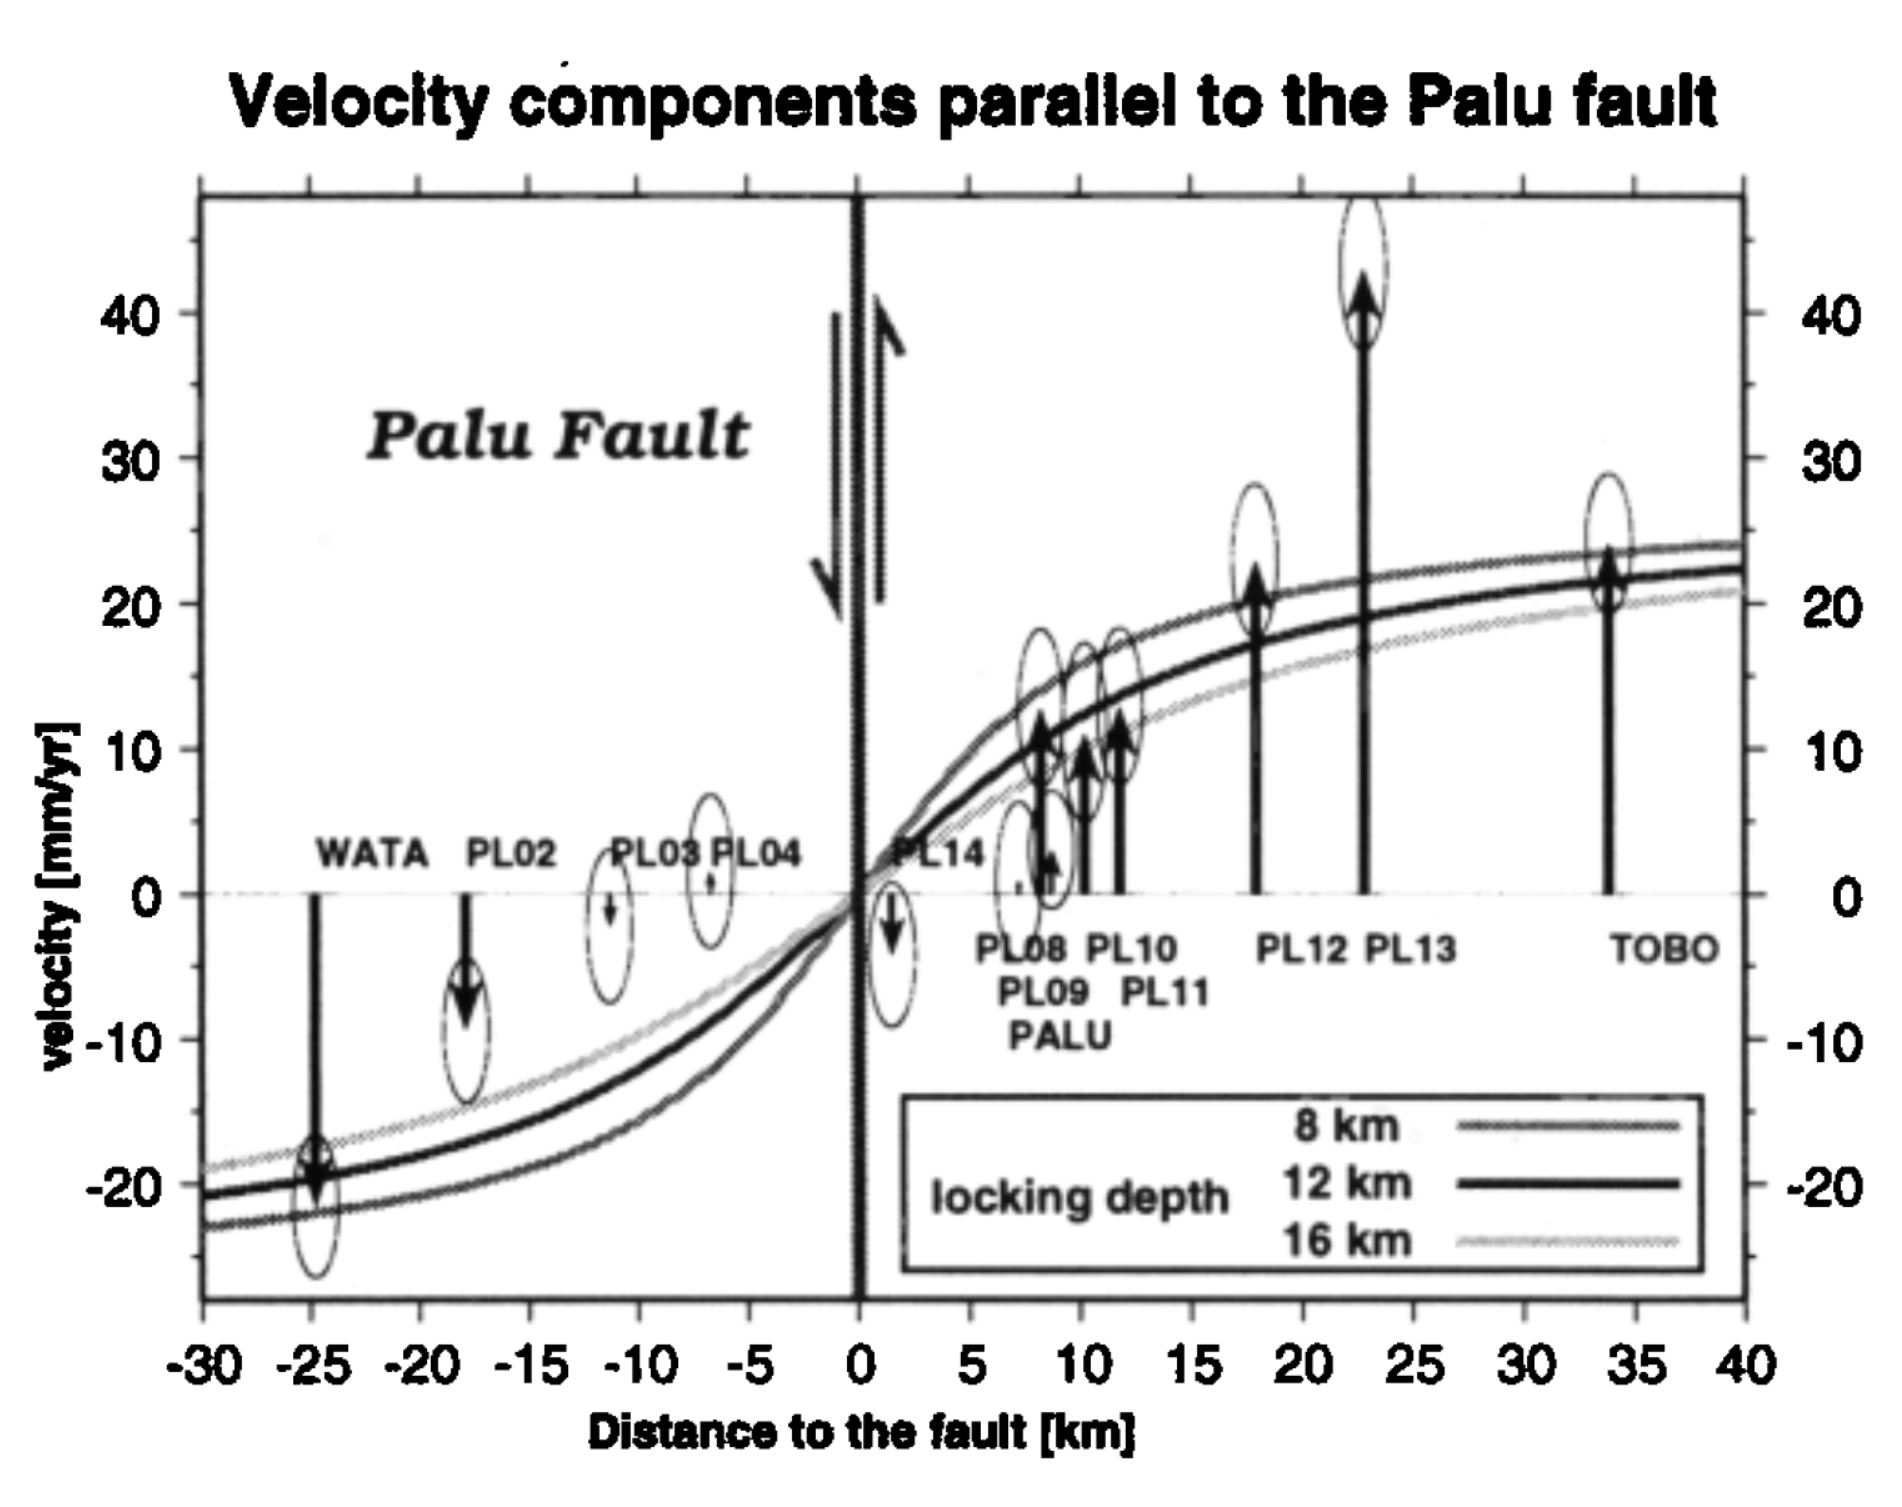 Jay Patton Online The Center Body And Range Of Technically 1974 International 1700 Wiring Diagram Transect Station Velocity Components Parallel To Fault With Co Seismic Deformation Due Jan 1996 Earthquake Removed